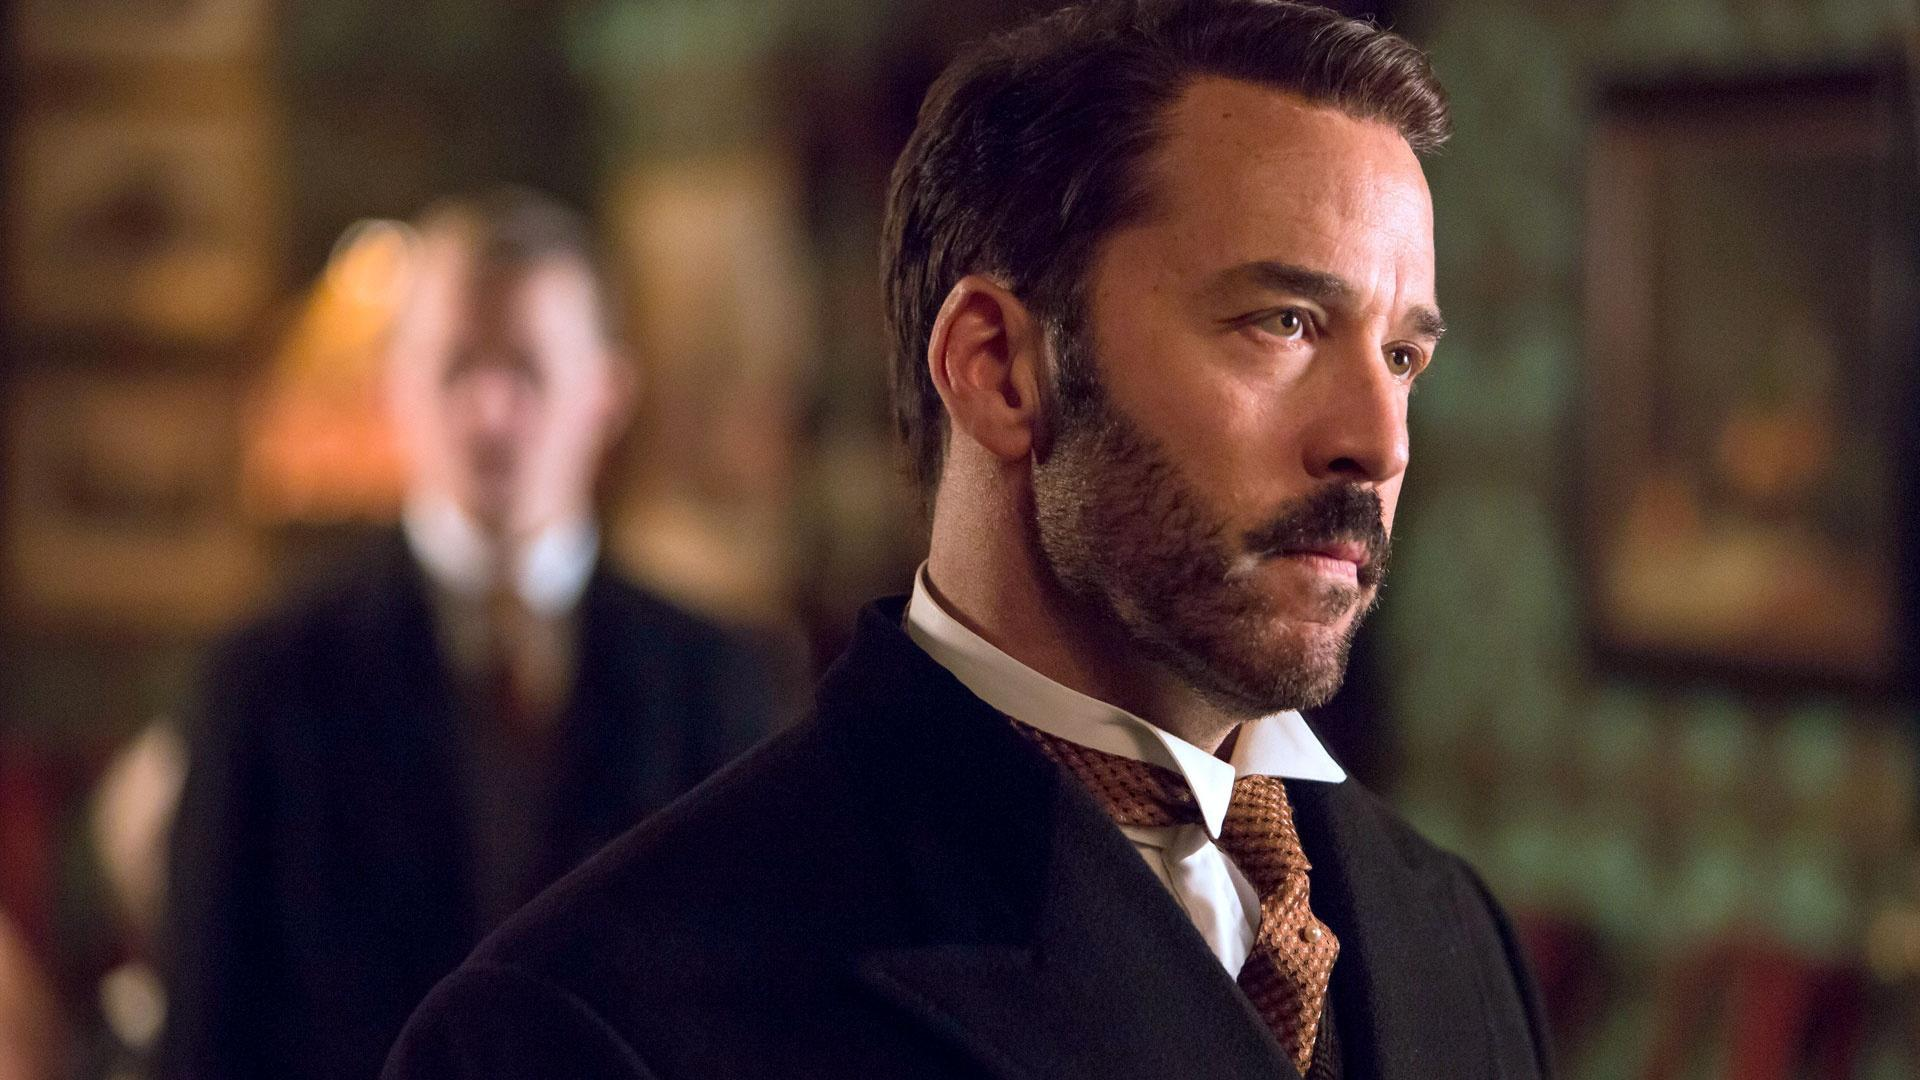 Mr. Selfridge Season 3 - Episode 1: Sunday, March 29 at 8:05pm